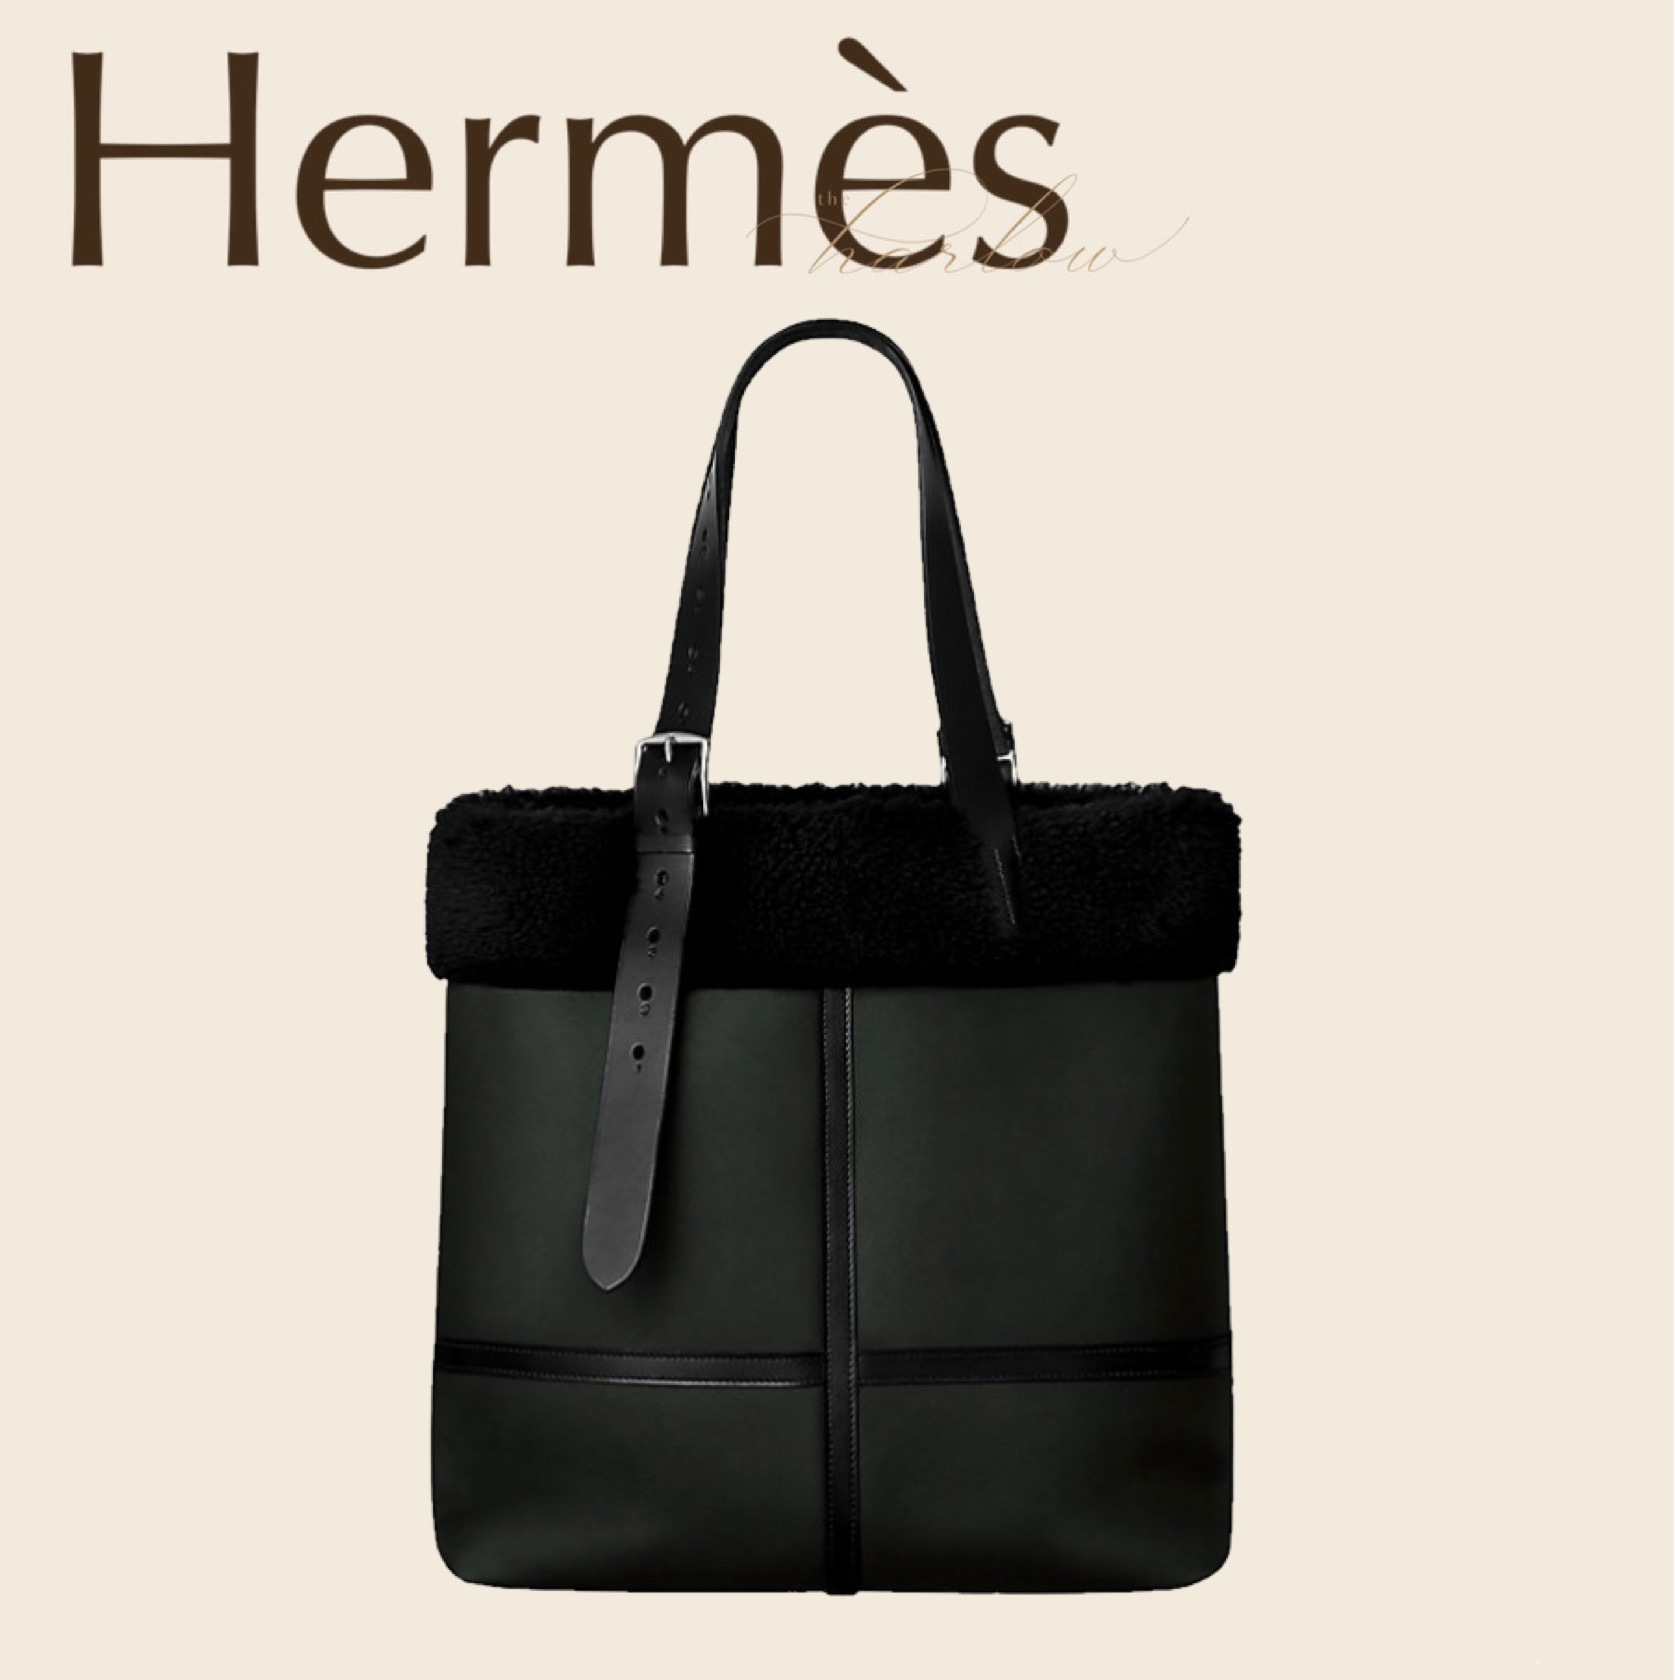 HERMES アビエーター バッグ トート エトリヴィエール H ロゴ 男 (HERMES/トートバッグ) 70973891